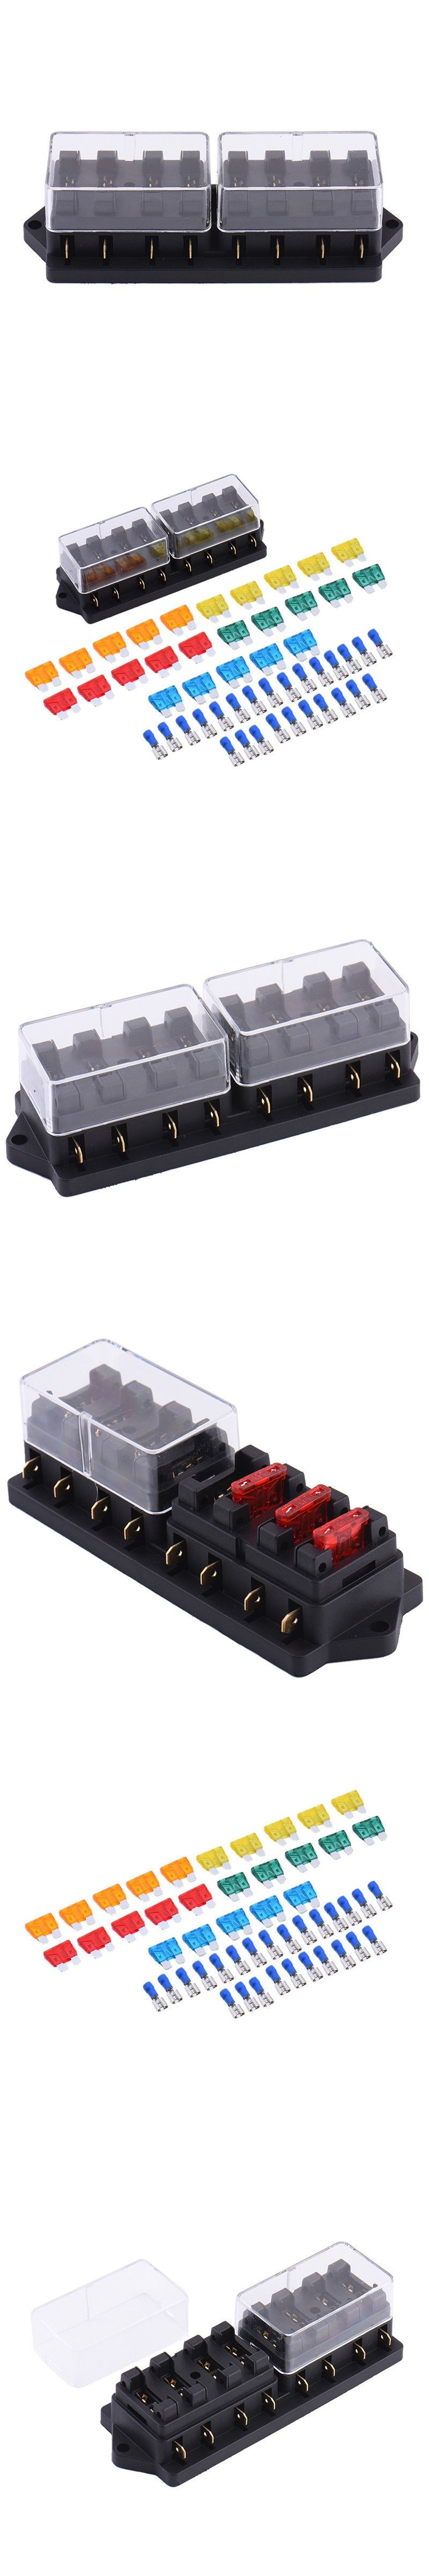 hight resolution of 12v 8 way fuse block holder box car vehicle circuit automotive blade with 15pcs fuse accessory